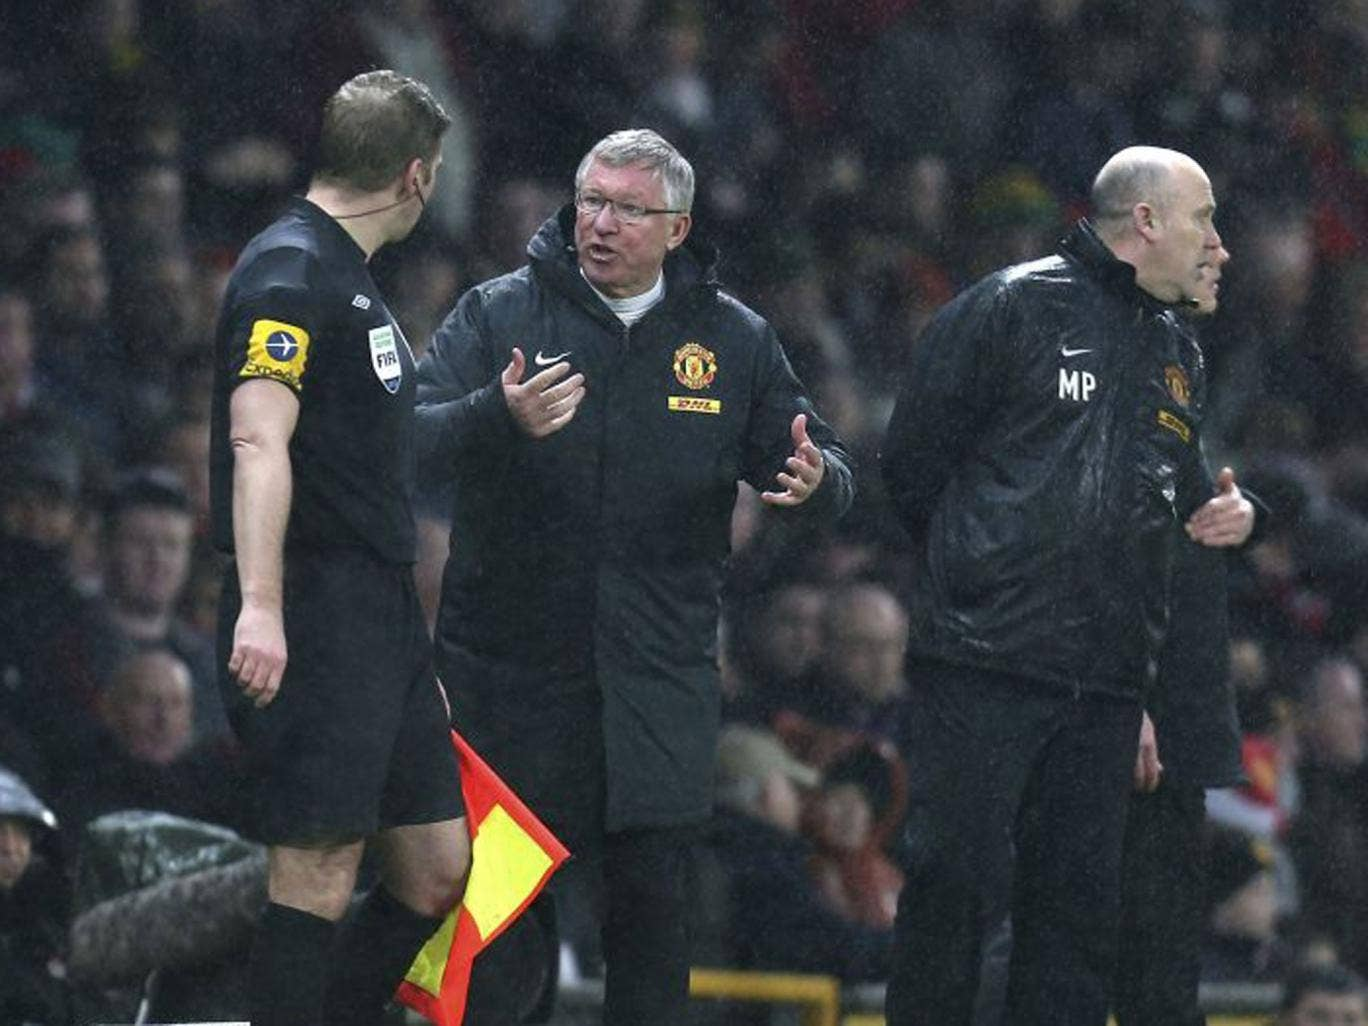 Sir Alex Ferguson in a monstrous mood during Manchester United's victory over Newcastle United on Boxing Day